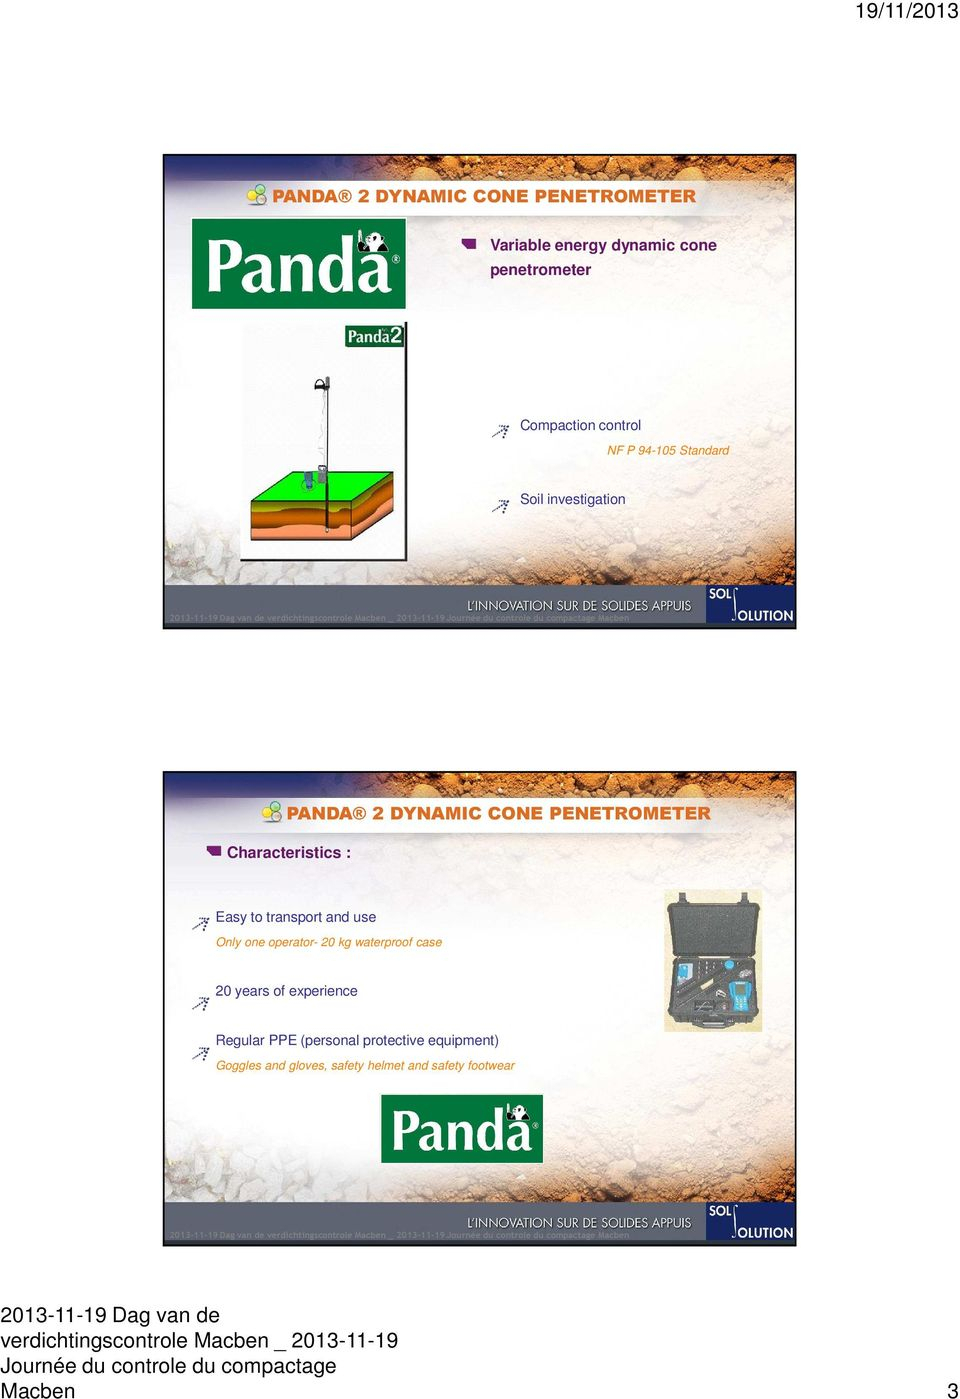 Dynamic Cone Penetrometer Excel Spreadsheet Within Panda 2 Dynamic Cone Penetrometer For Compaction Control And Soil